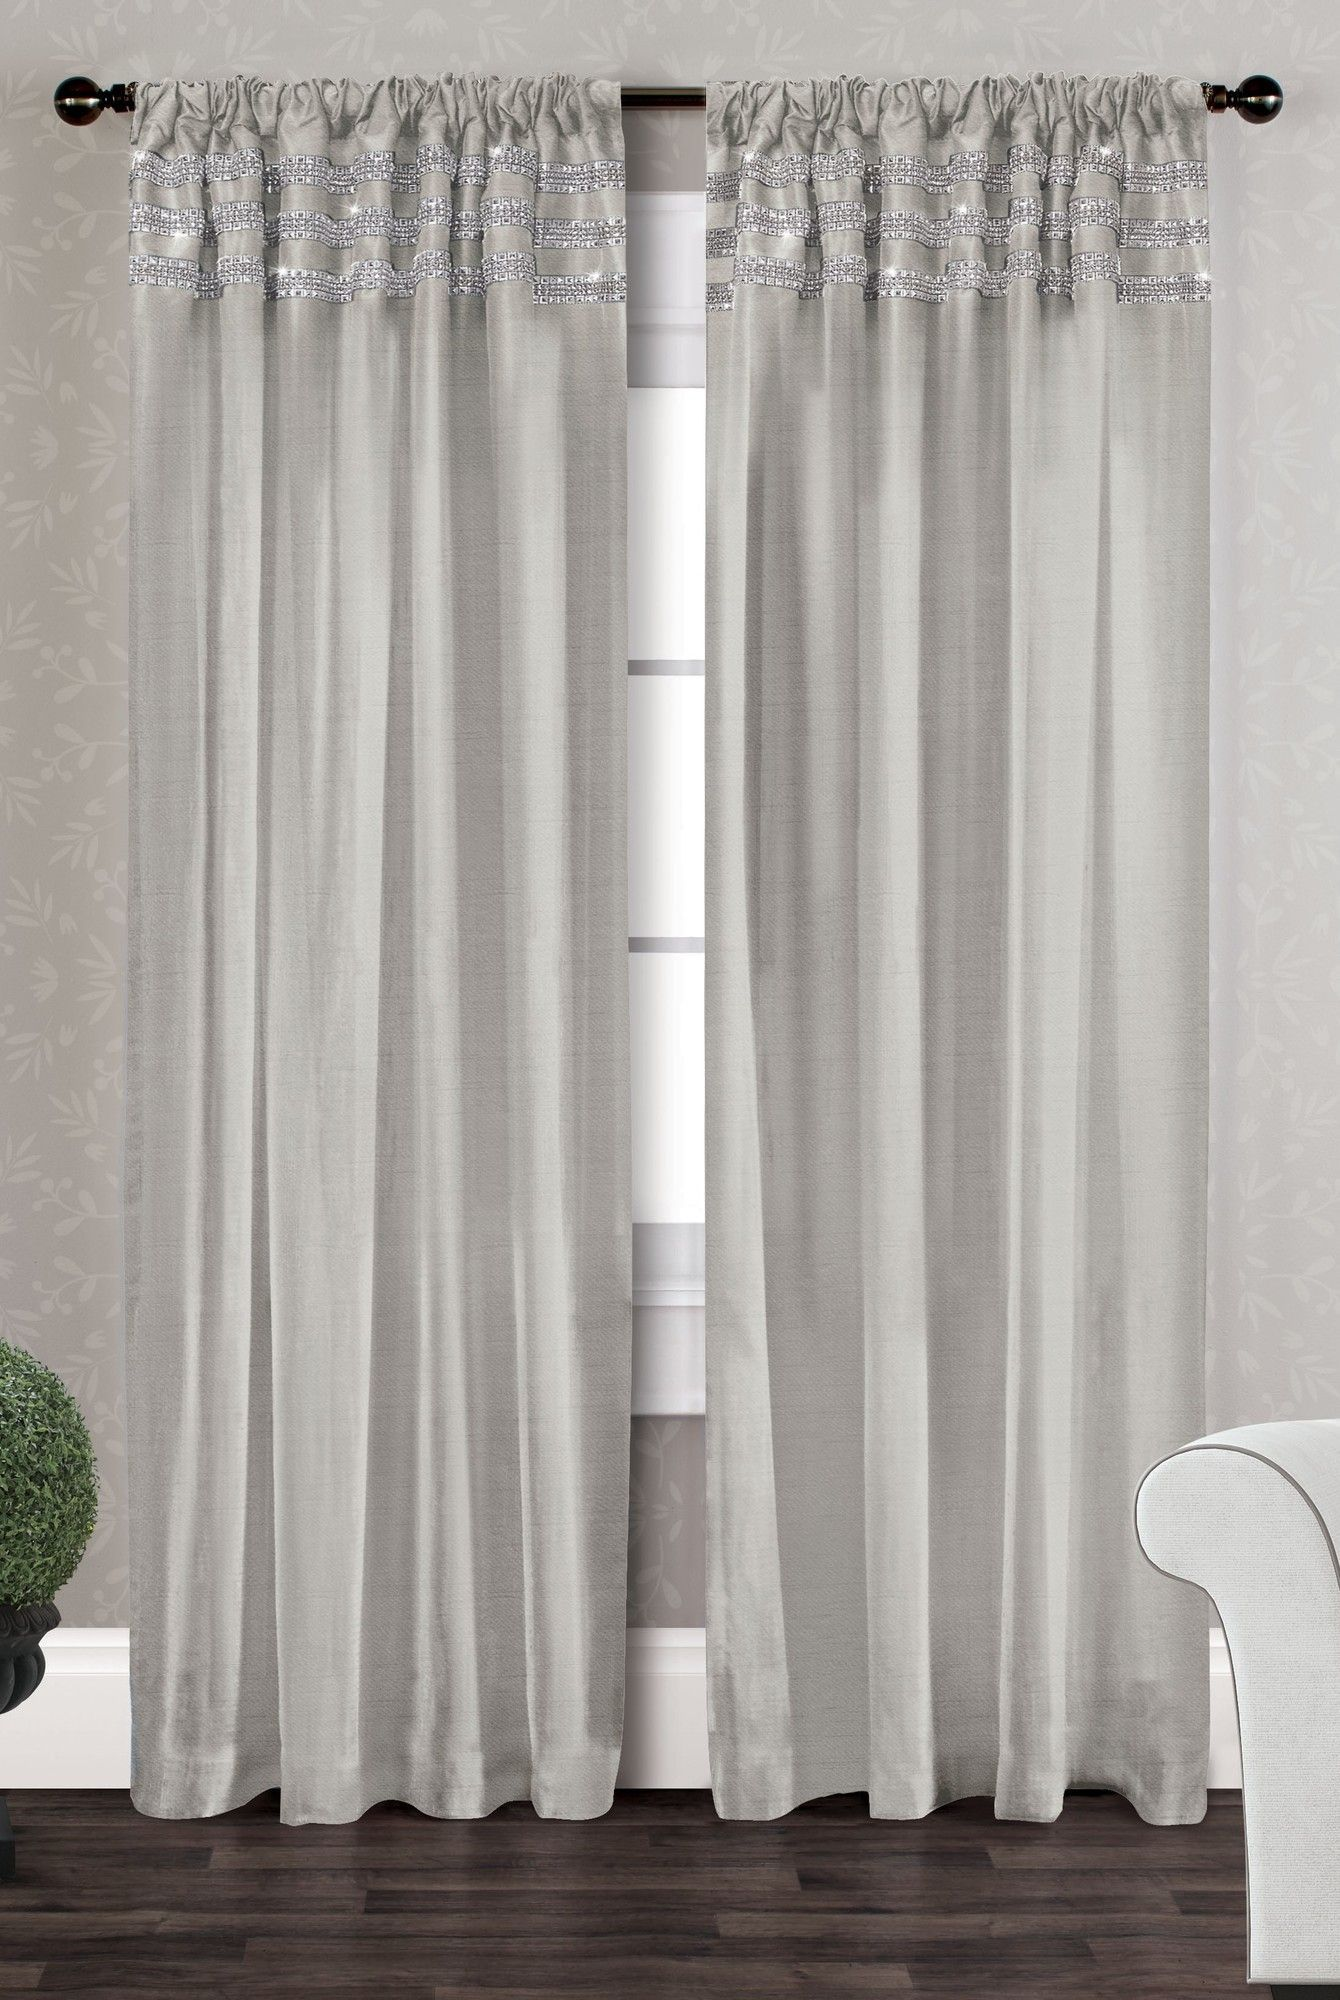 Amalgamated Textiles Bling Curtain Panel Set Of 2 Curtains Panel Curtains Striped Room